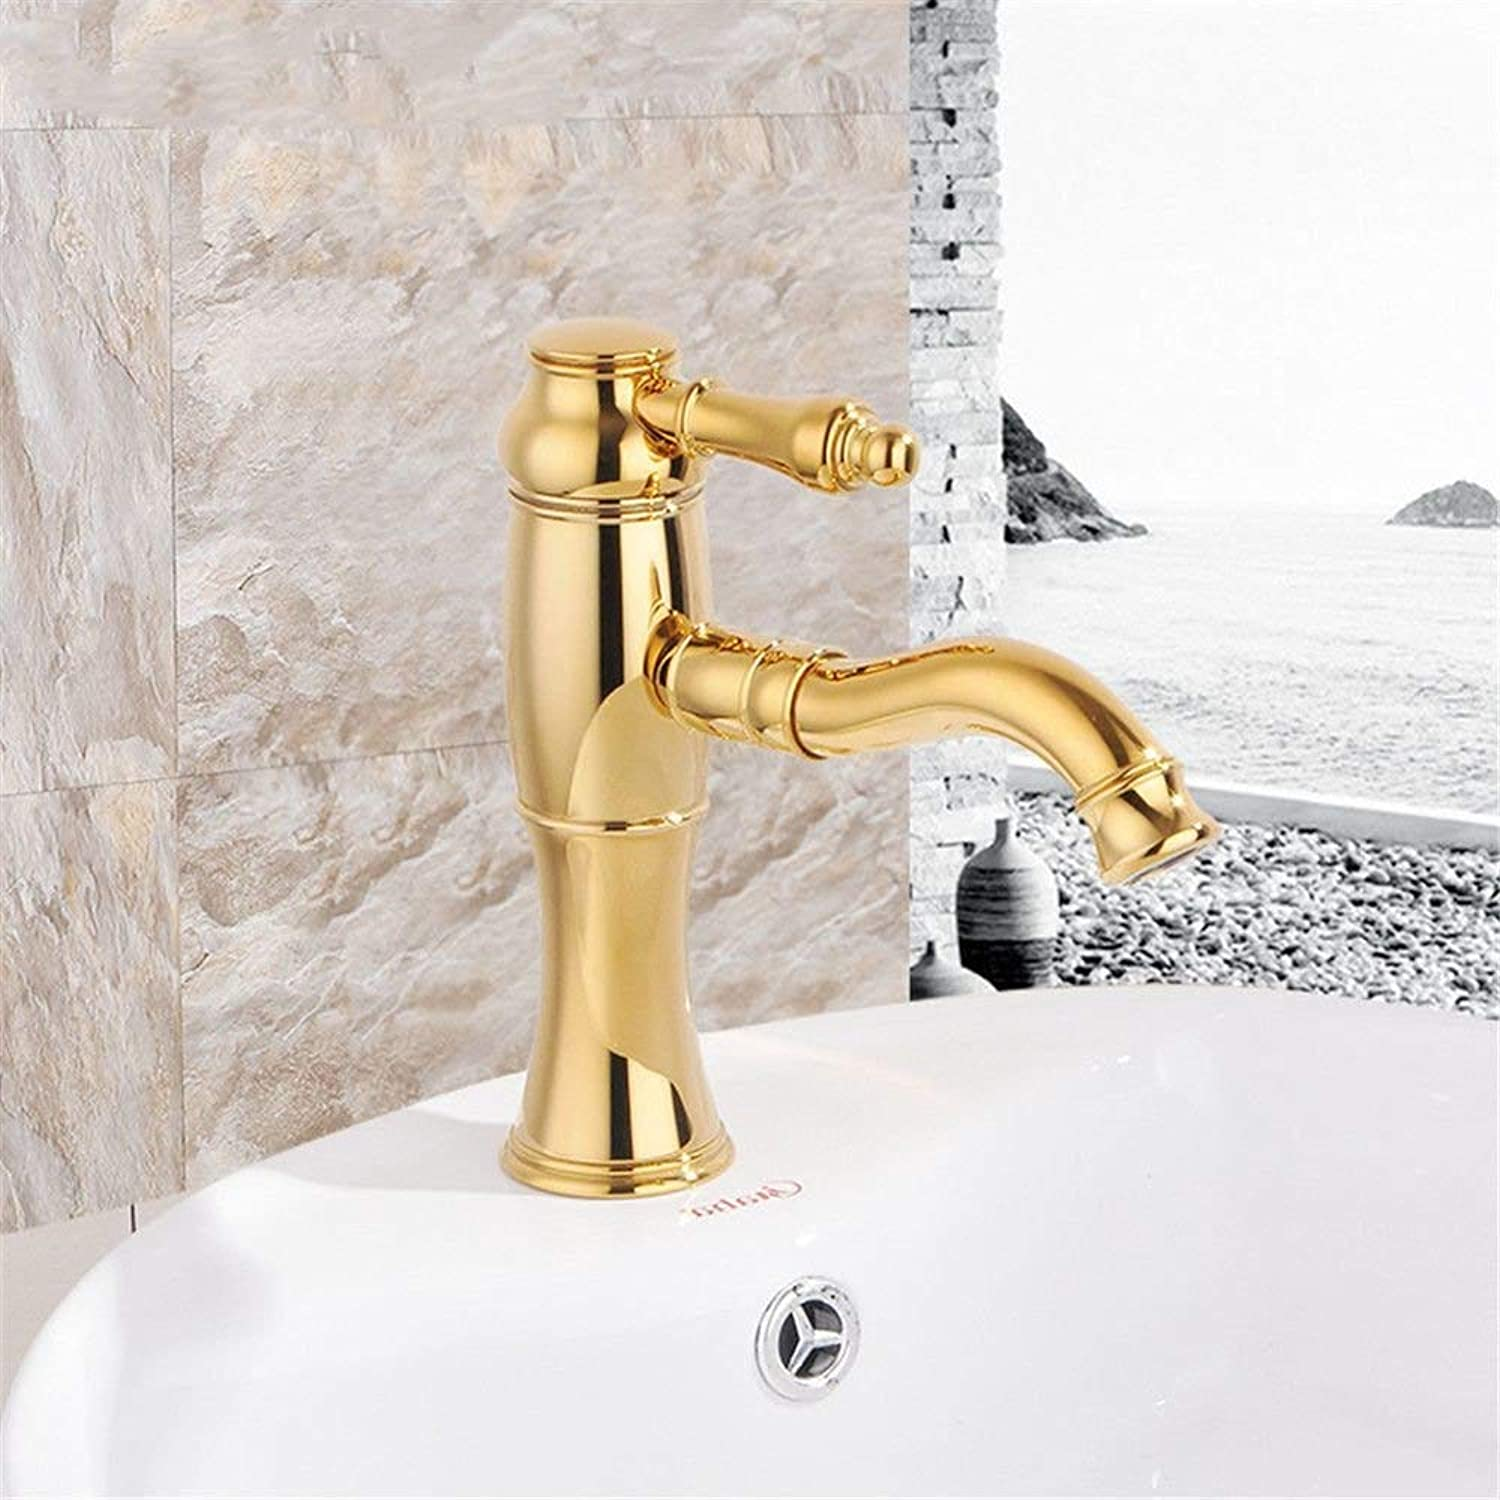 DOJOF Bathroom Vanity Sink Faucet Brass Antique Hot and Cold Water Bathroom Basin Sink Tap Bathroom Faucet